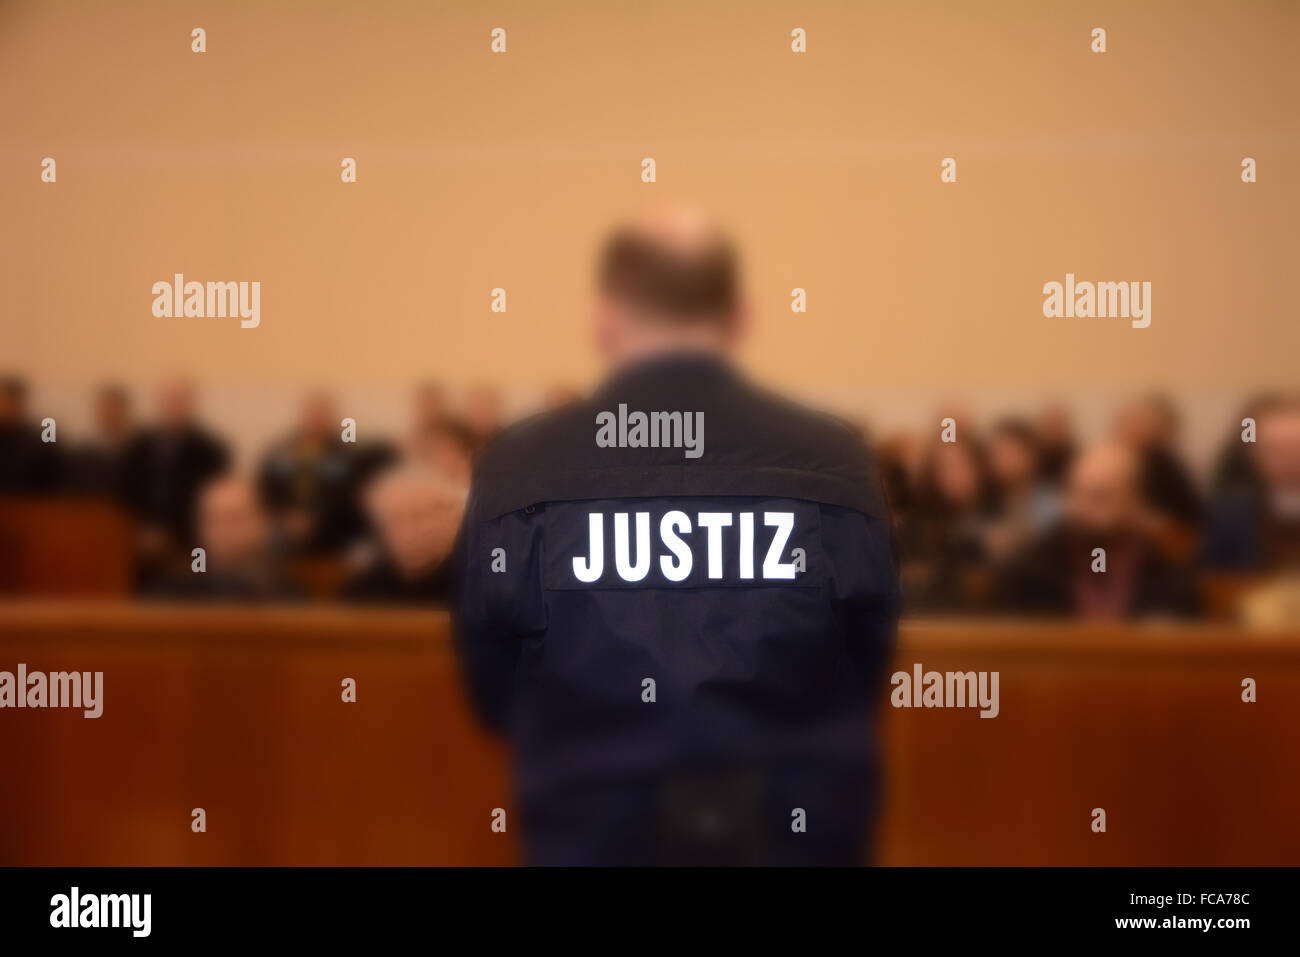 in a courtroom - Stock Image